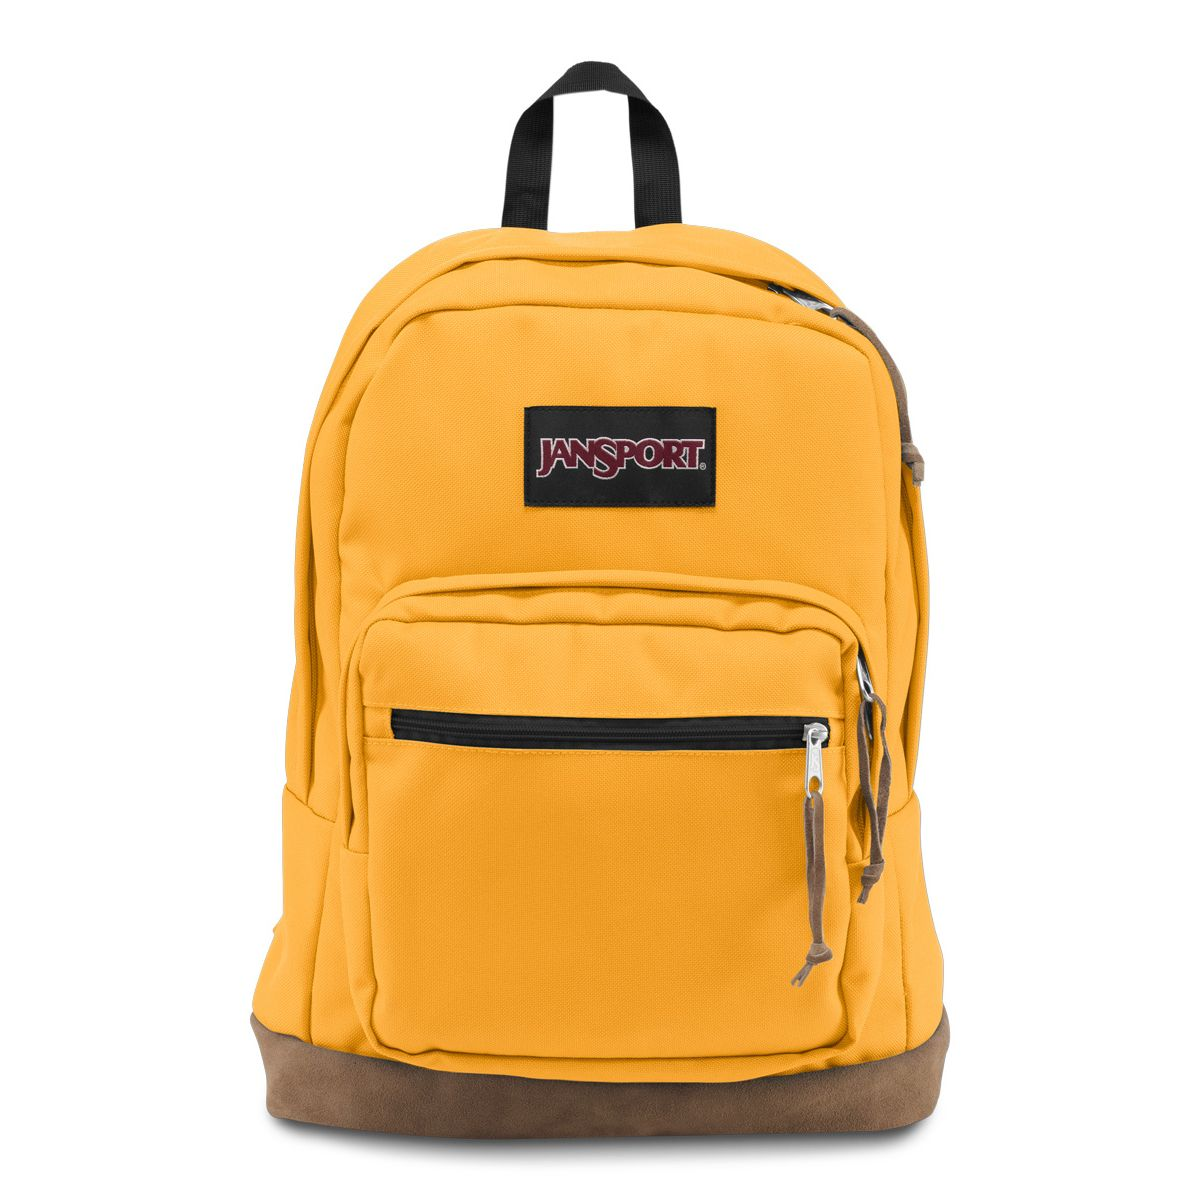 JanSport Right Pack Backpack in English Mustard